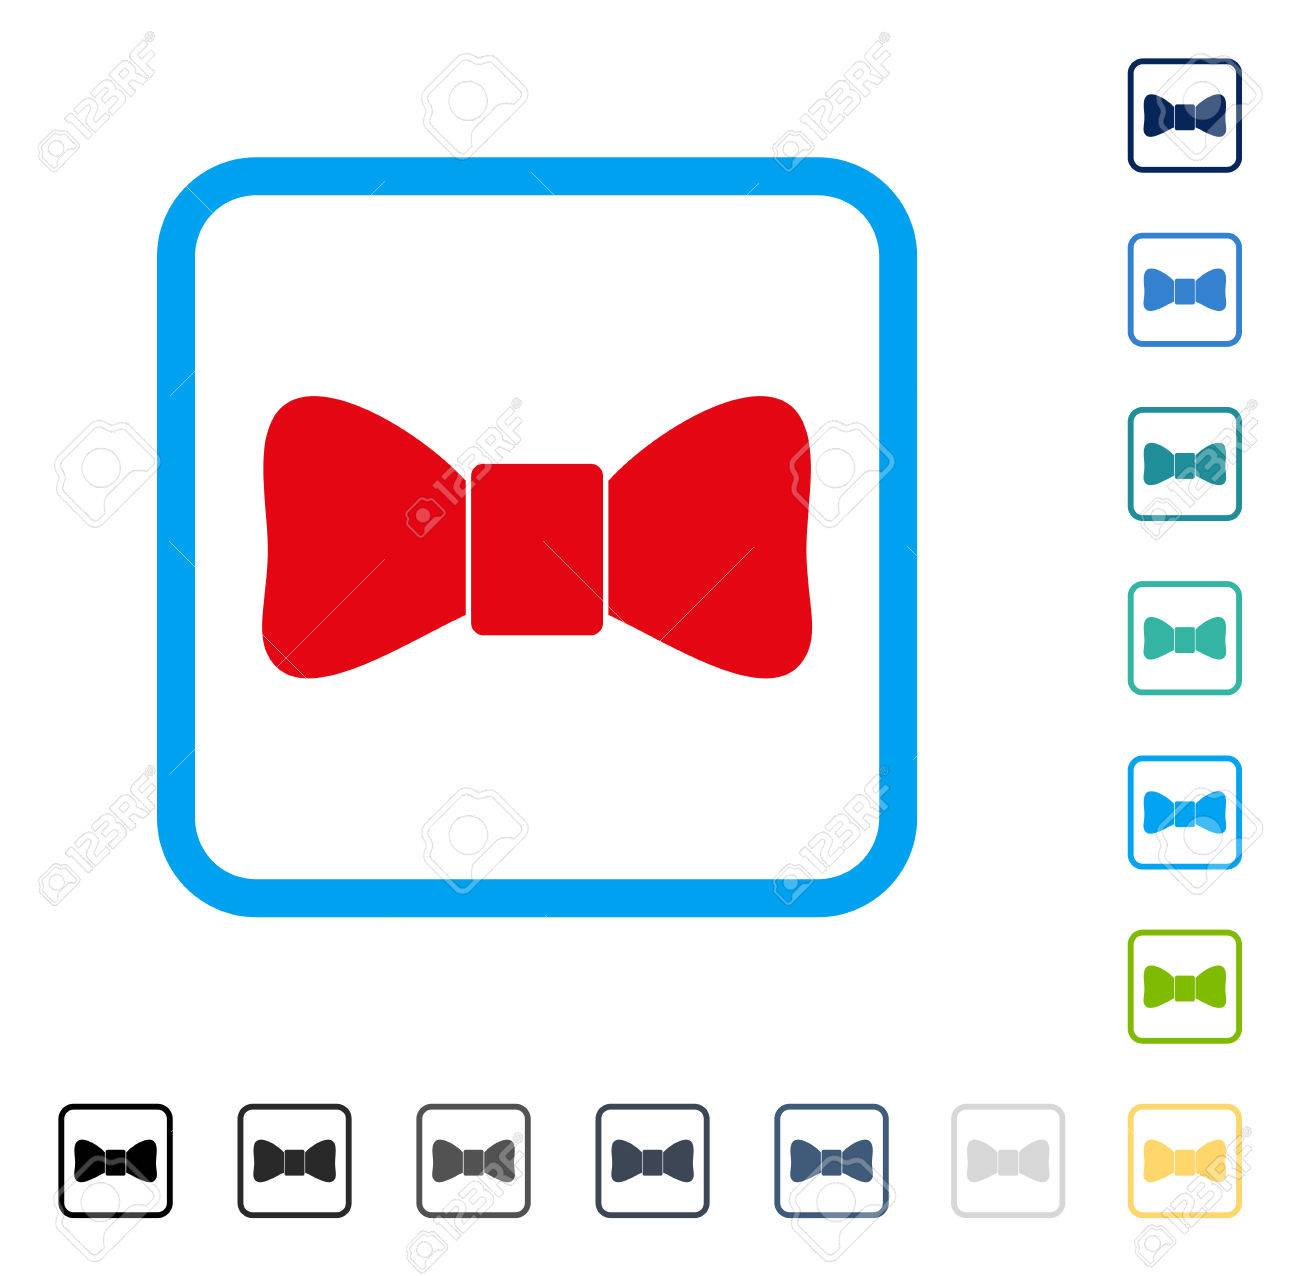 Bow Tie Icon Inside Rounded Square Frame Vector Illustration